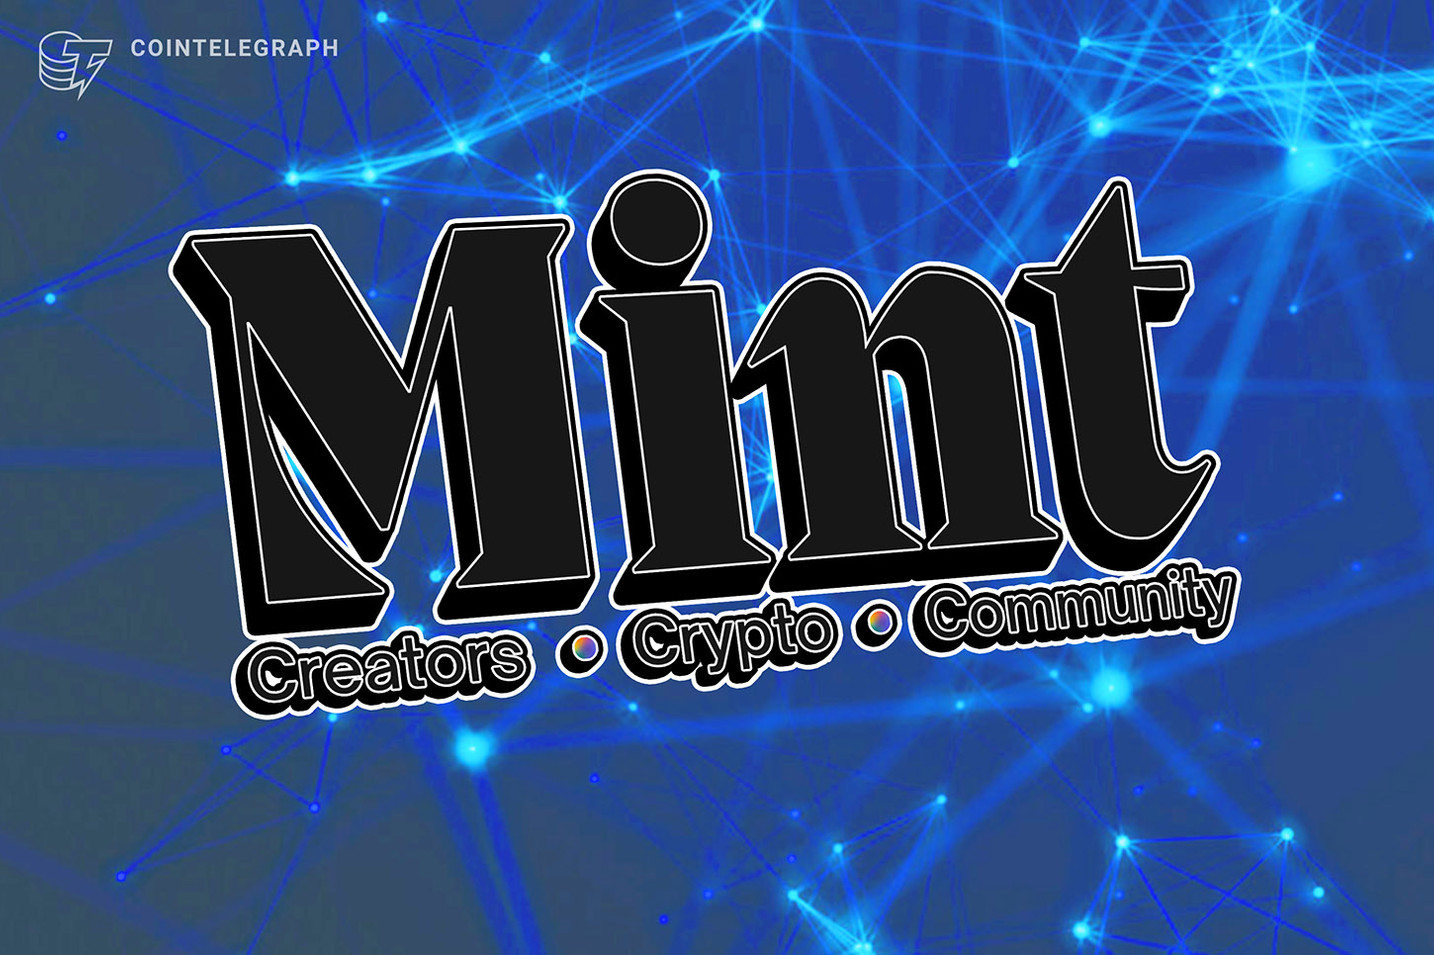 Season 1 of 'Mint' hosted by Adam Levy debuts today featuring 11 Web 3.0 creators